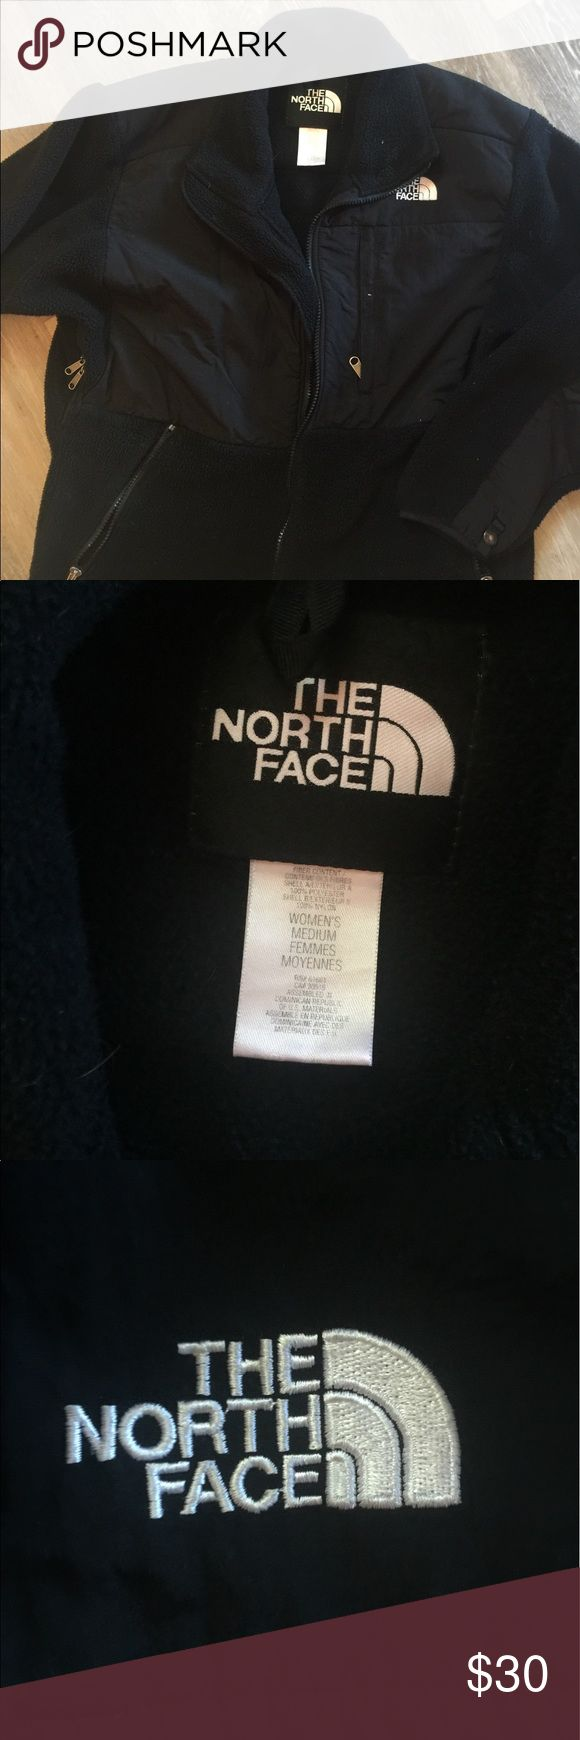 North face Ladies jacket North face ladies jacket in nice condition The North Face Jackets & Coats